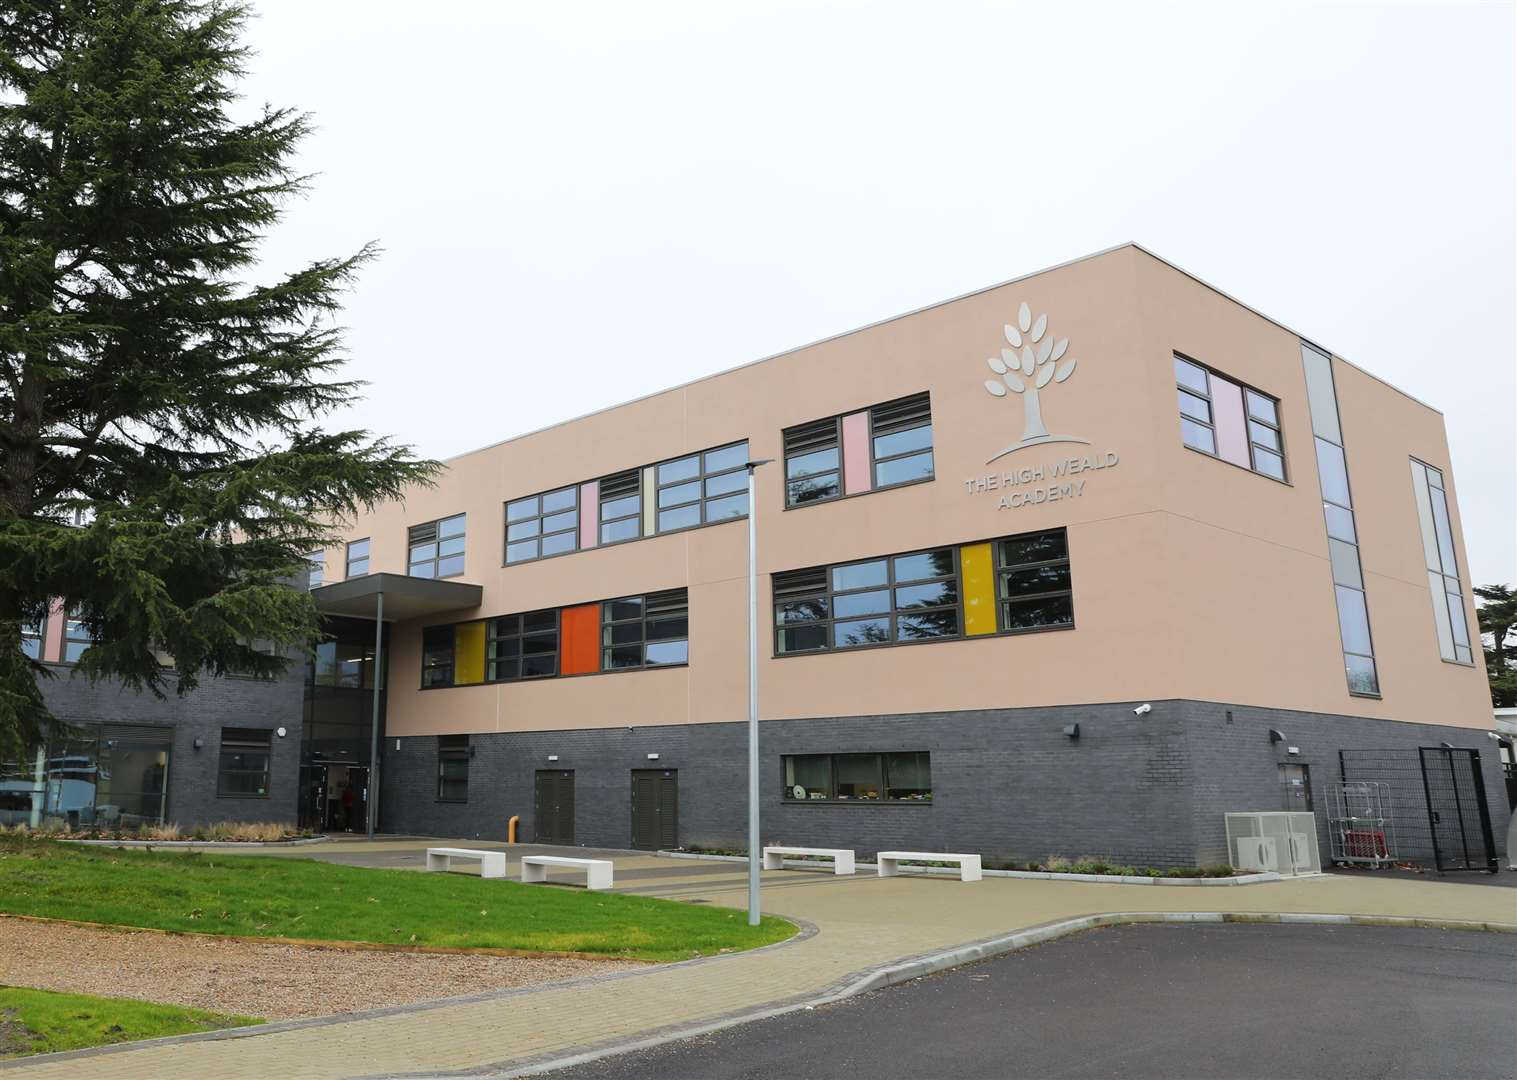 The High Weald Academy in Cranbrook would be absorbed as part of the plans. Picture: Andy Jones.